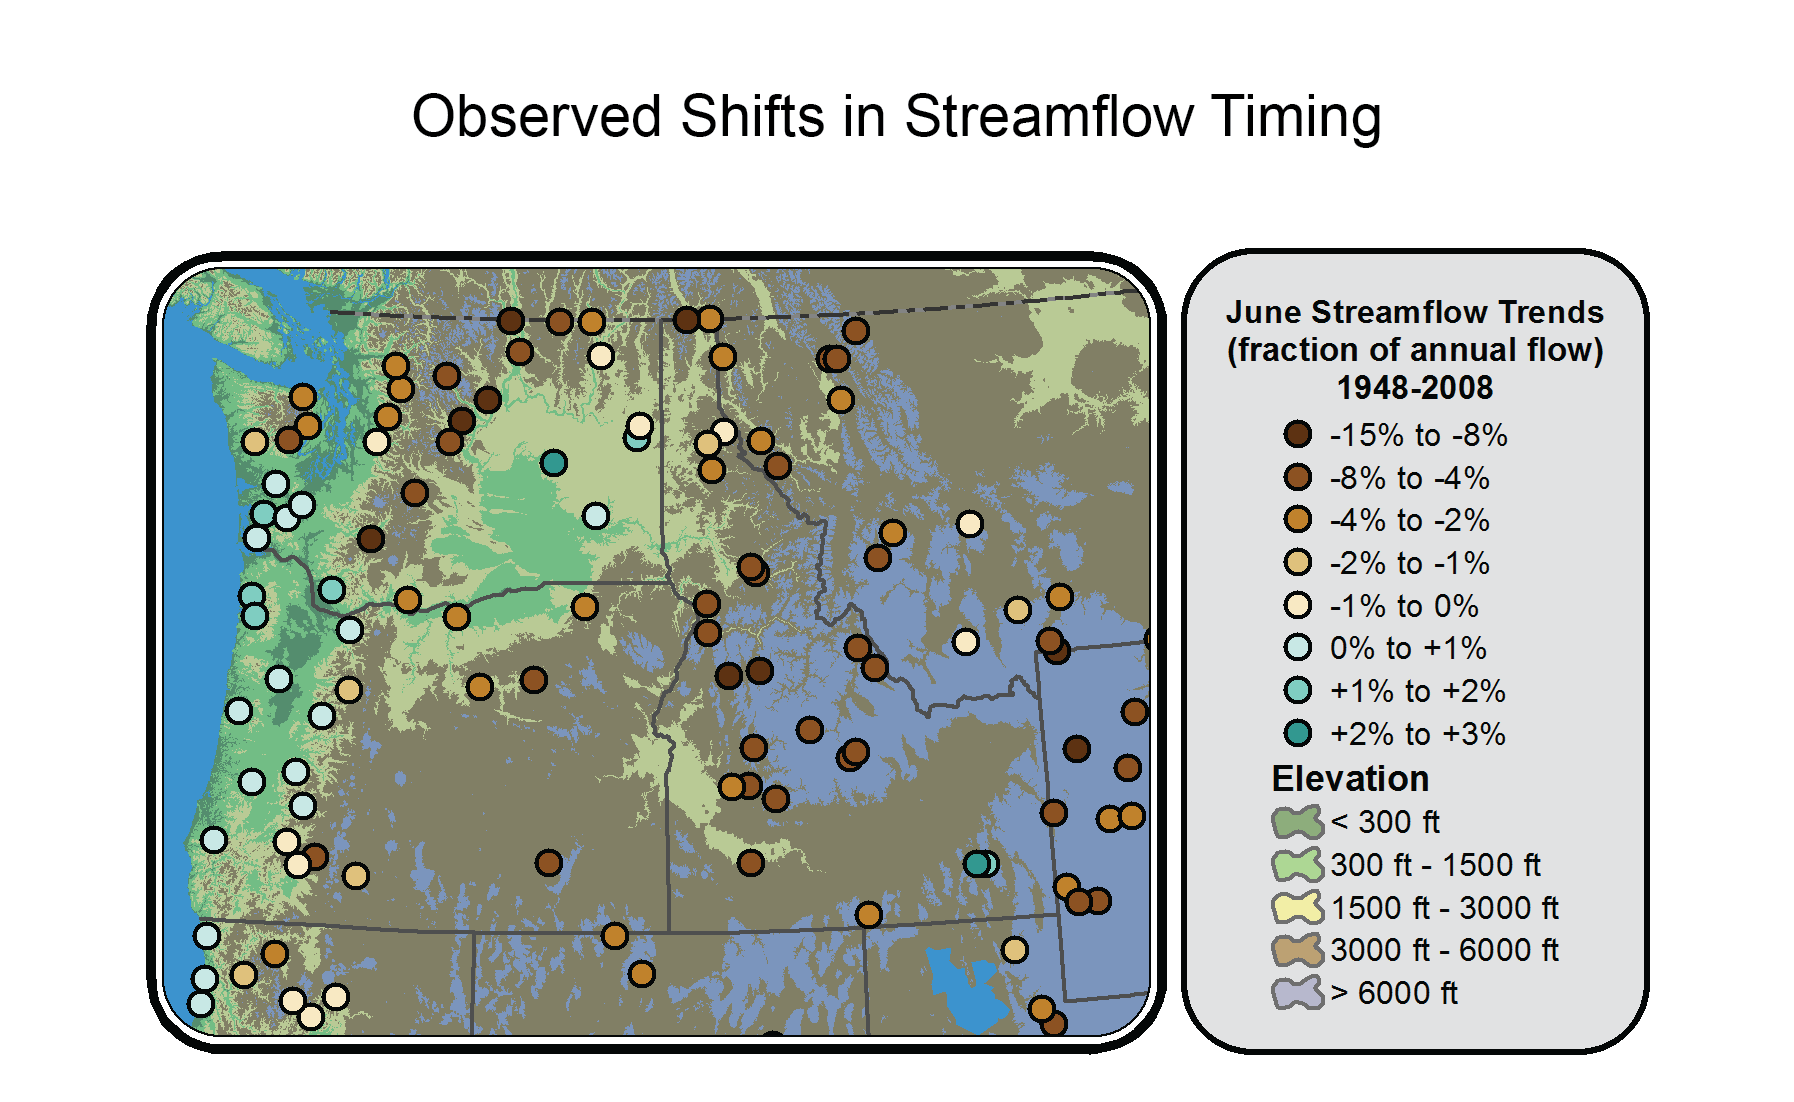 Nw_streamflow_timing_v1